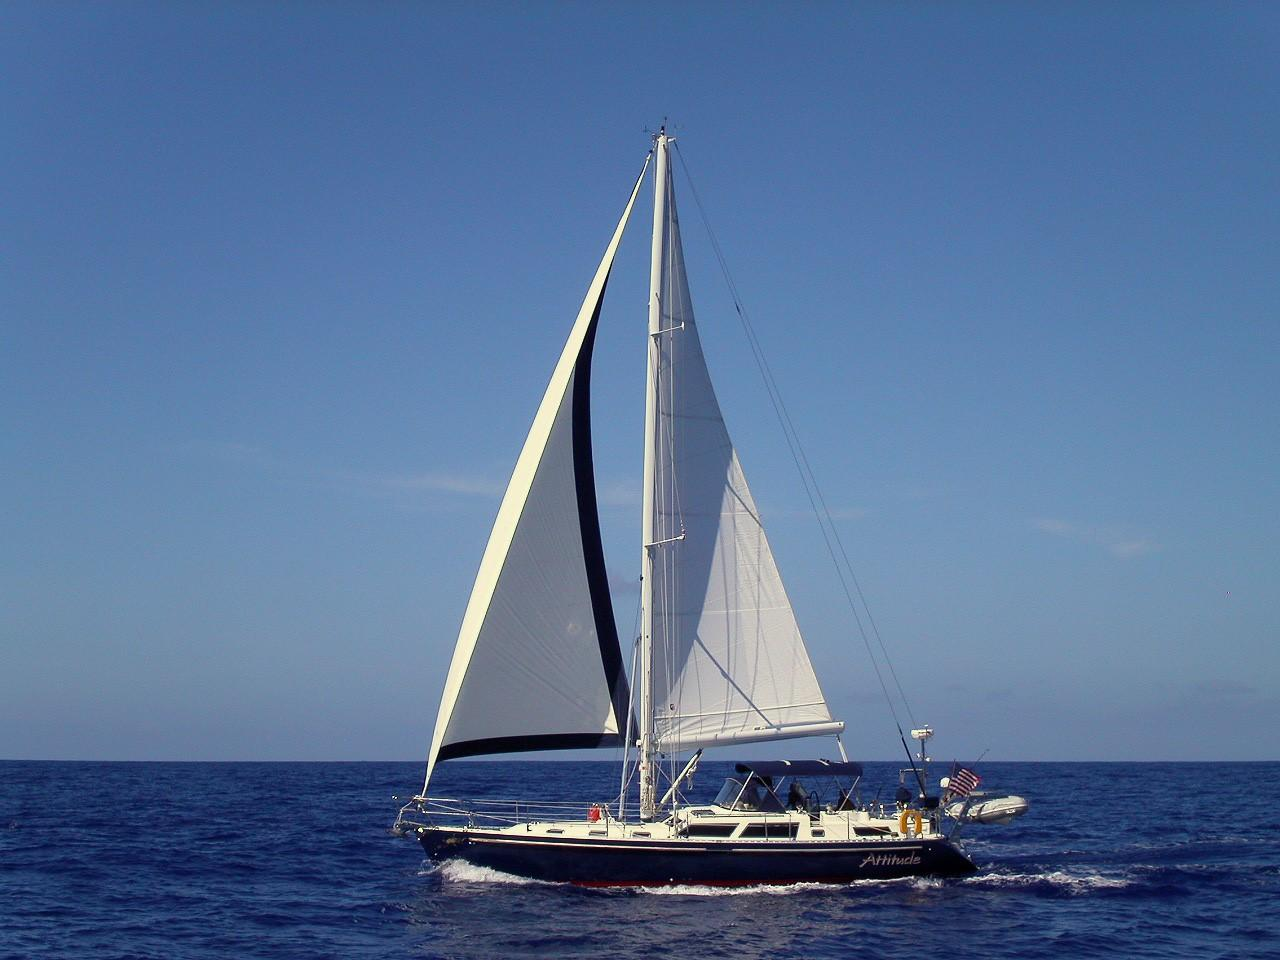 6245704_20170527181503943_1_XLARGE&w=1280&h=960&t=1495938267000 hans christian boats for sale yachtworld Simple Boat Wiring Diagram at n-0.co